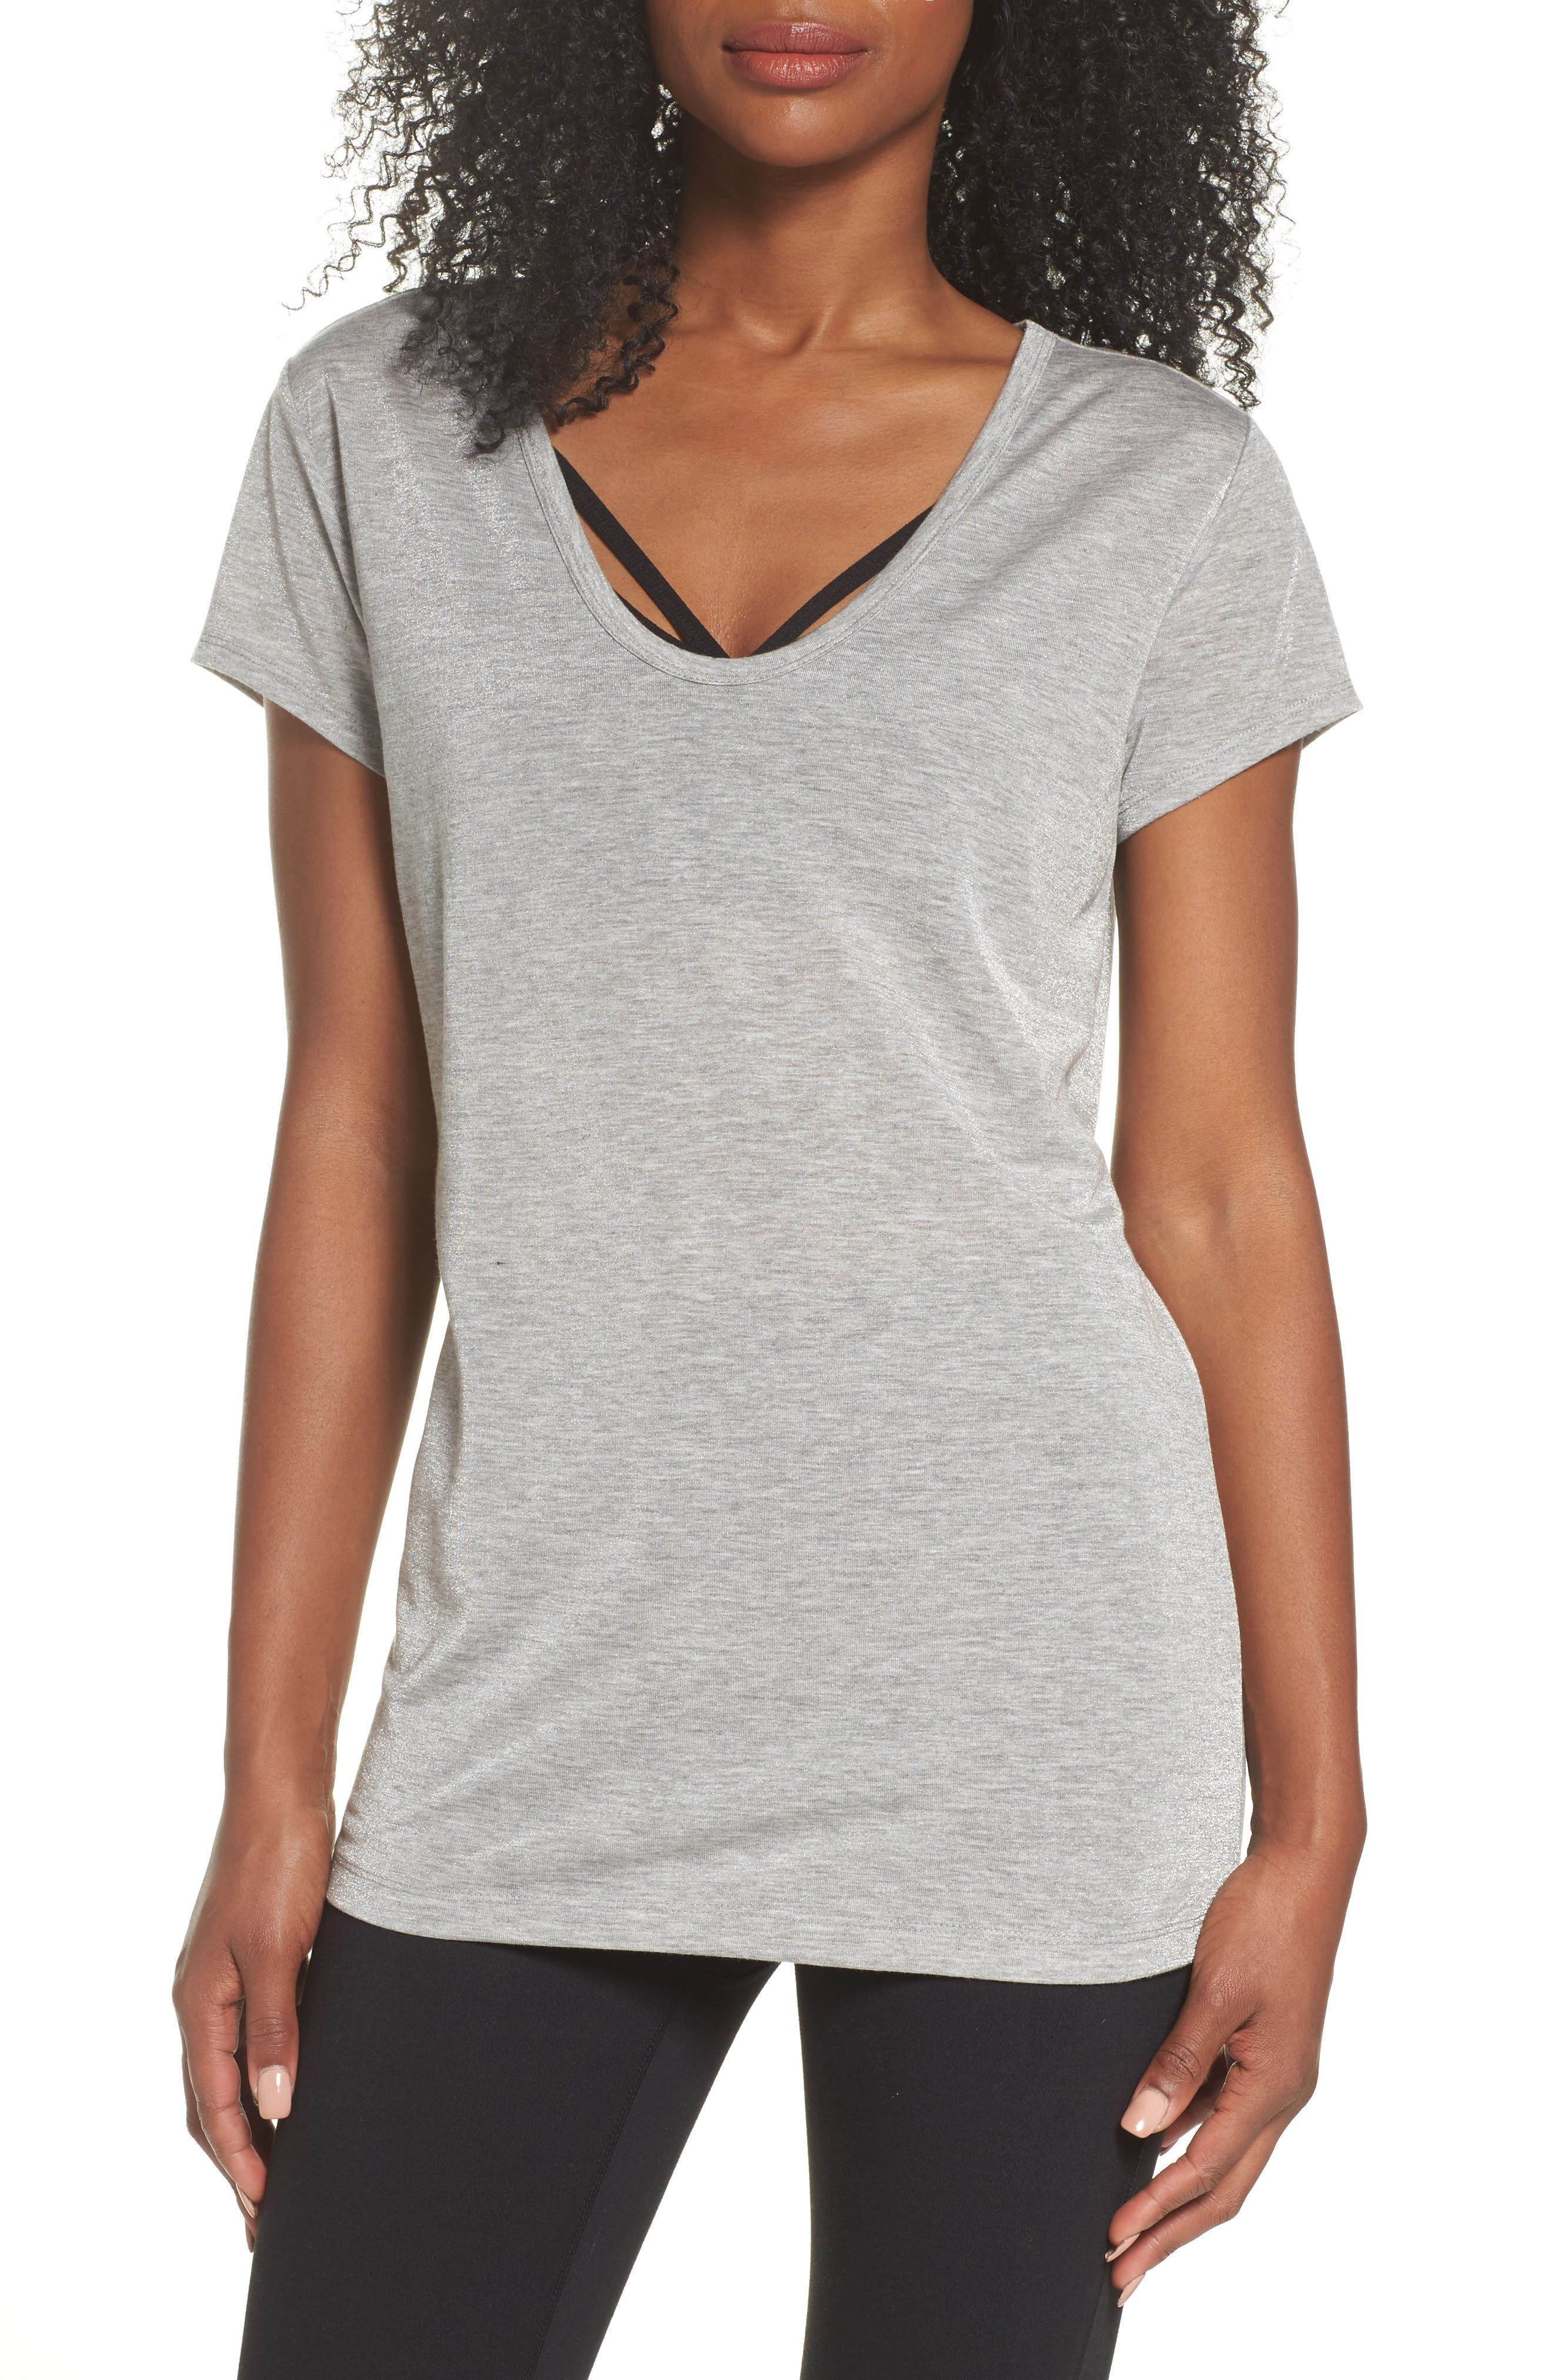 Boot Camp Tee,                         Main,                         color, 050